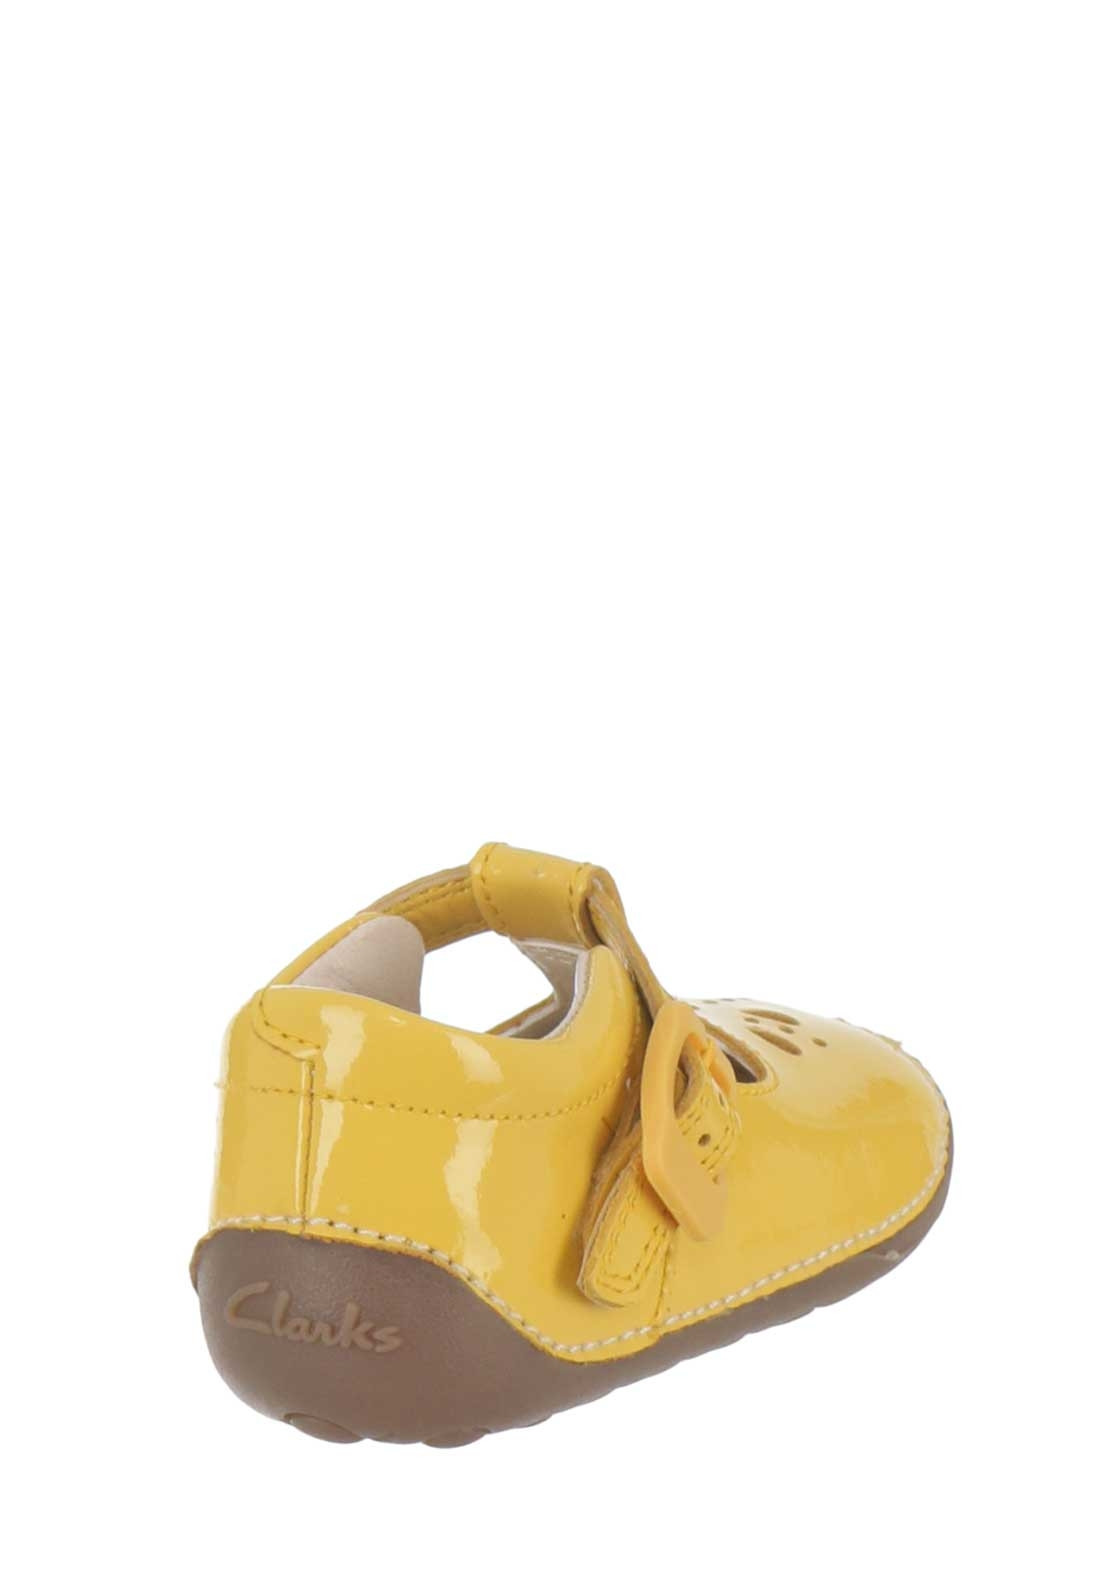 ffb026860fac4 Clarks Baby Girls Little Weave Leather Pre-walking Shoes